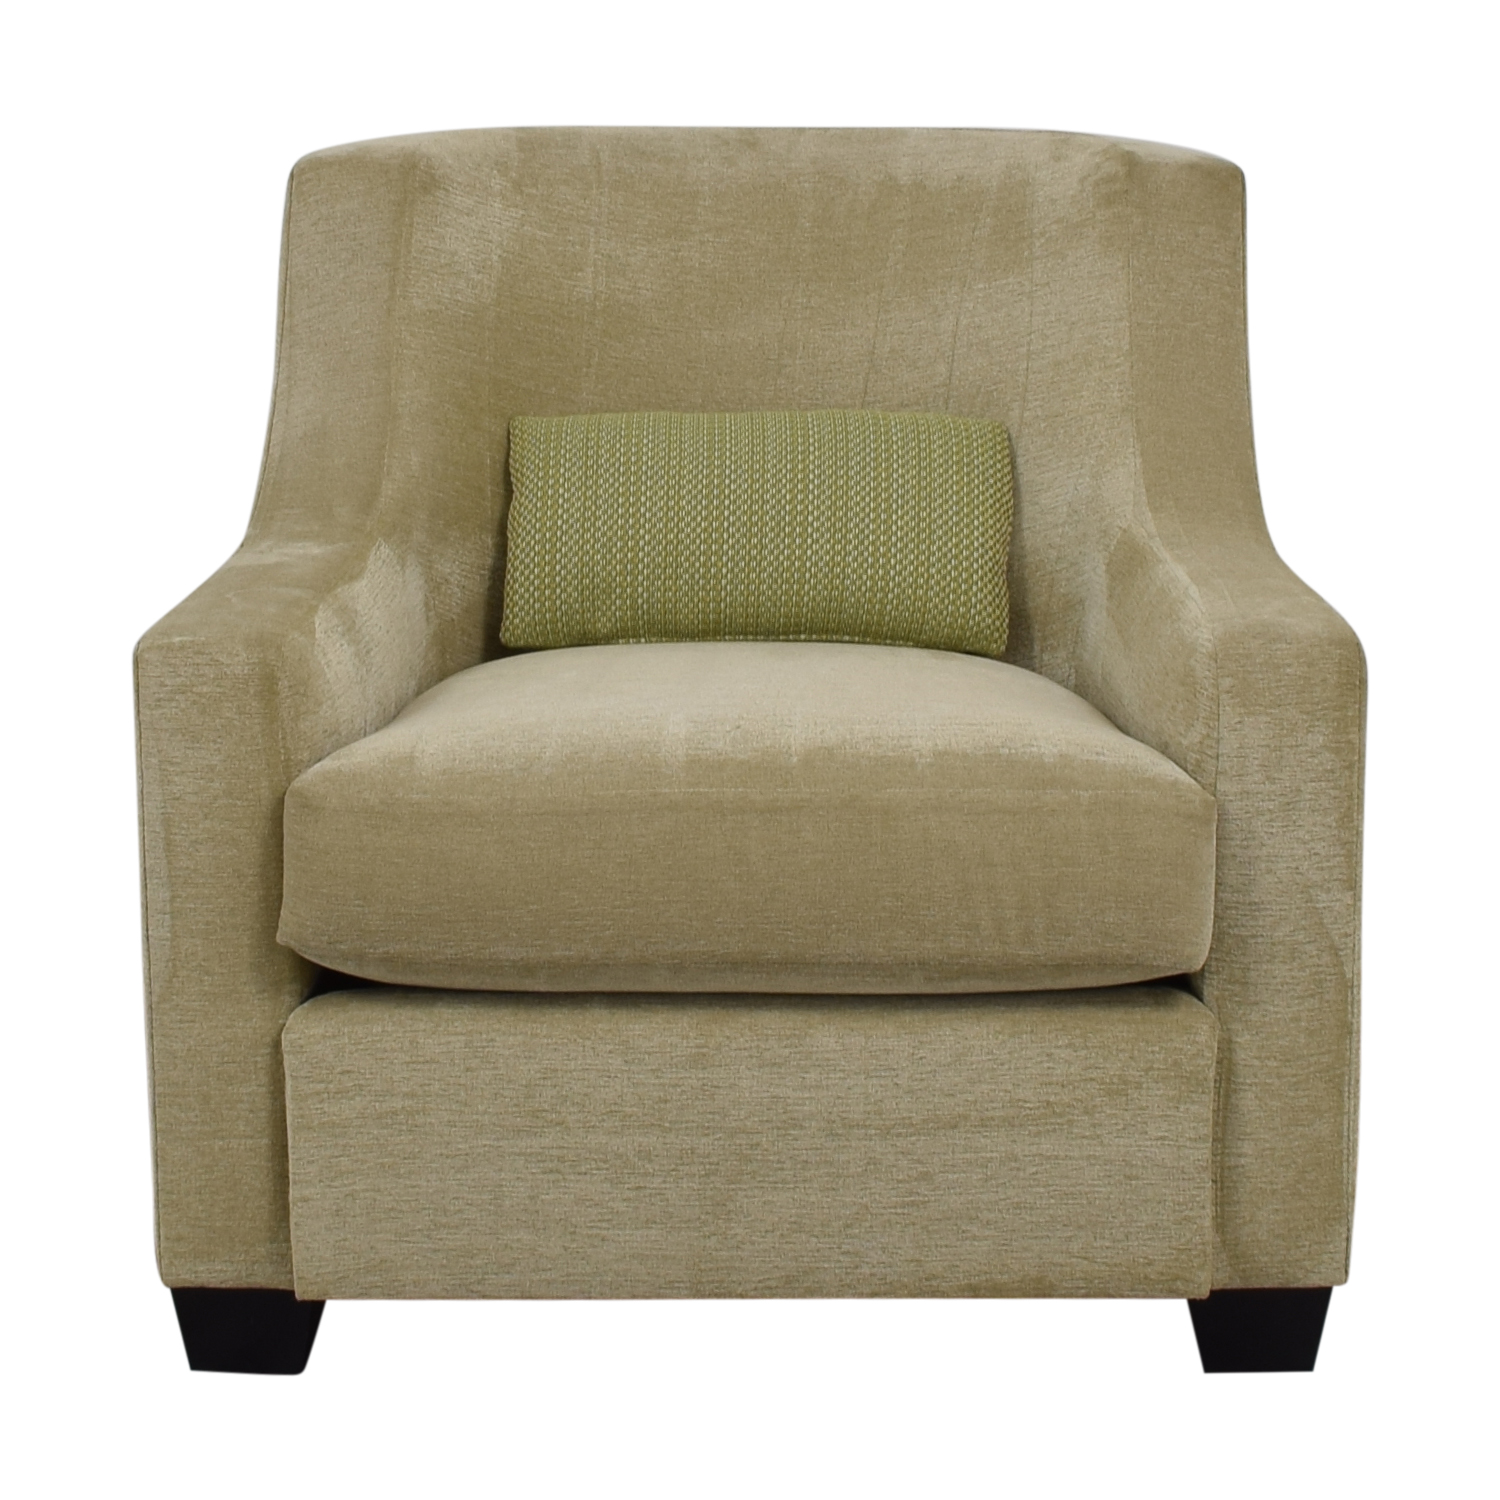 Furniture Masters Furniture Masters Beige Club Chair second hand